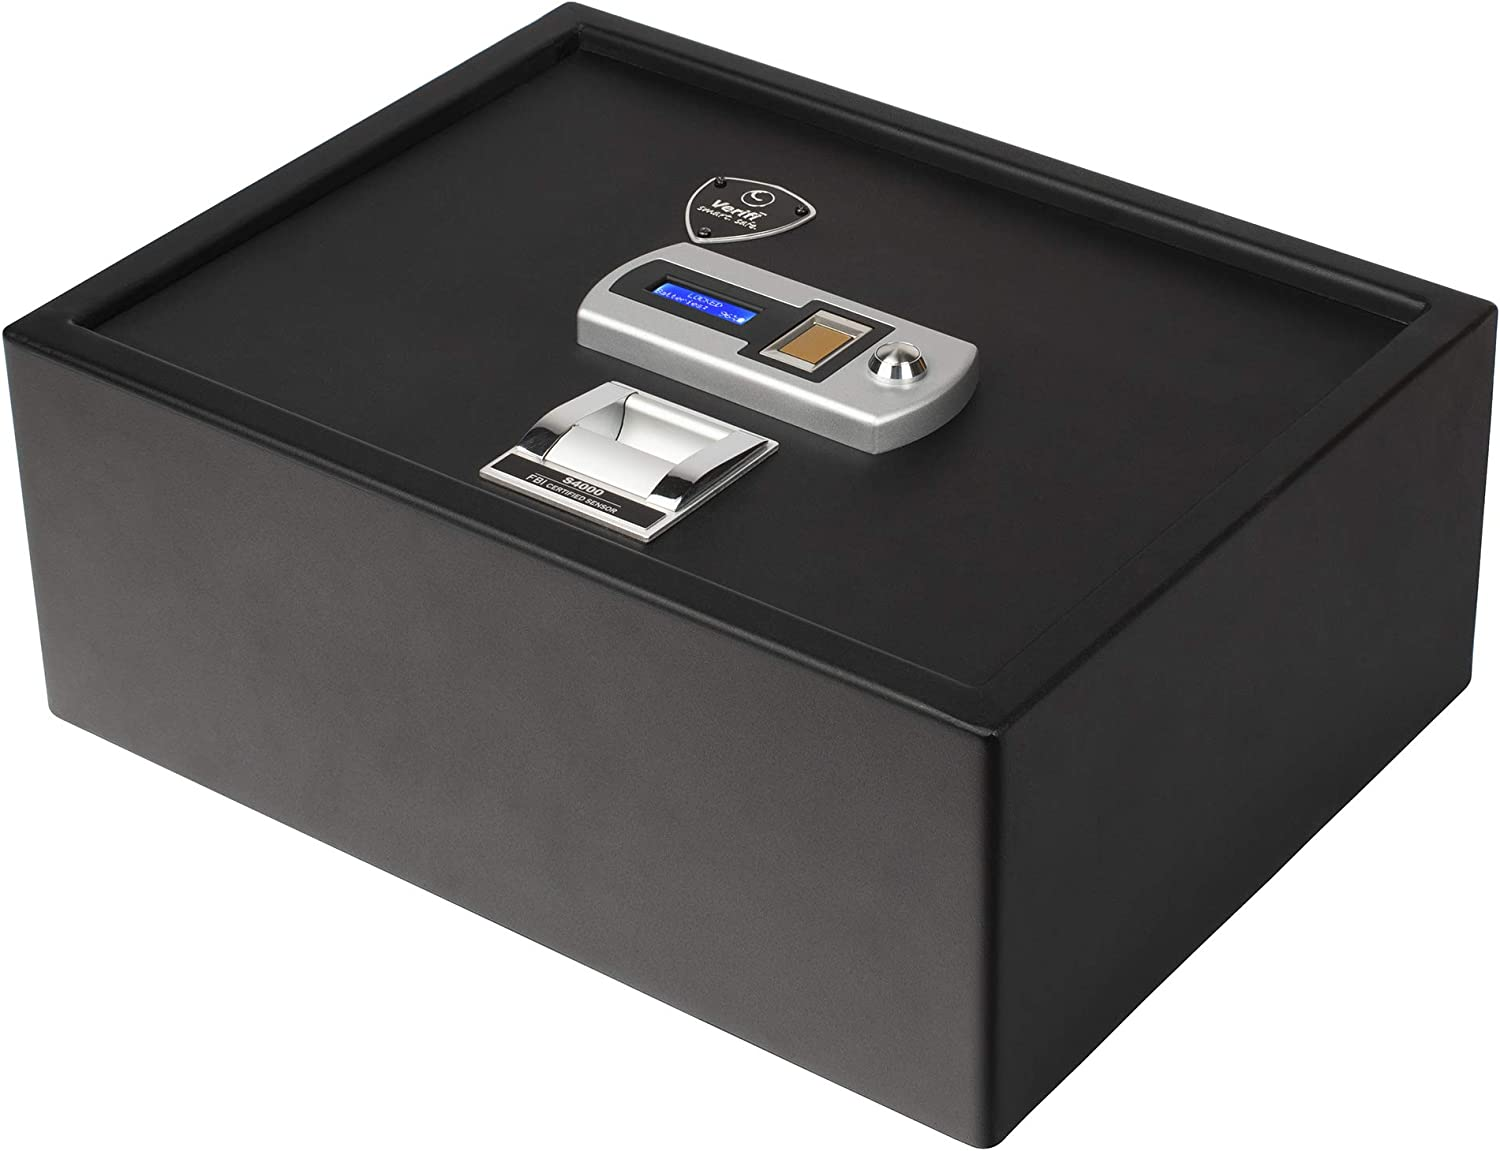 Verifi Smart Safe Biometric Gun Safe with Fingerprint Lock Security for Home or Business Storage of Pistols, Money and Jewelry